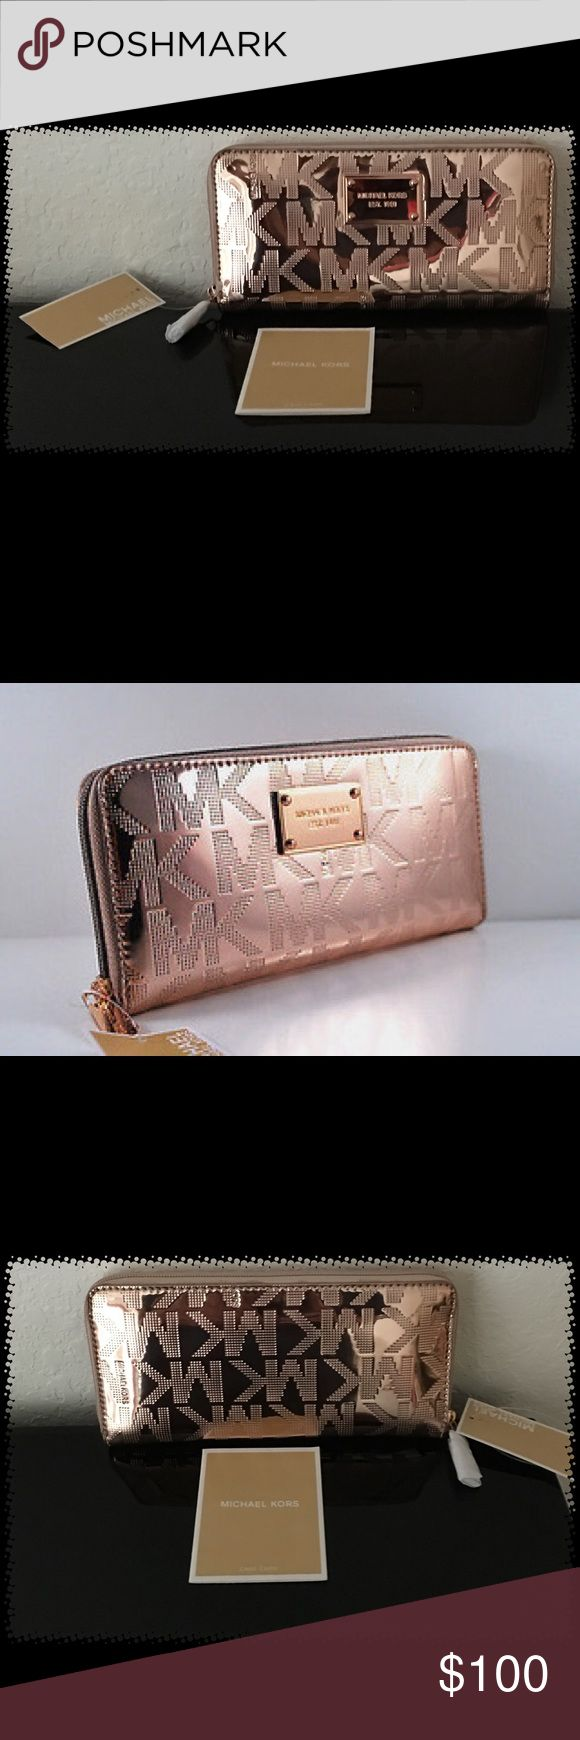 NWT-MICHAEL KORS ROSE GOLD MIRROR METALLIC WALLET NWT-MICHAEL KORS ROSE GOLD MIRROR METALLIC CONTINENTAL ZIP AROUND WALLET*THIS BEAUTIFUL WALLET IS MADE OUT OF ROSE GOLD MK SIGNATURE MIRROR METALLIC GENUINE LEATHER*REPEATED SIGNATURE MK LOGO.  FULL ZIP-AROUND CLOSURE**SIGNATURE ROSE GOLD TONE LOGO PLATE ON FRONT*INTERIOR- DIVIDER ZIPPER COIN COMPARTMENT IN THE MIDDLE*2 FULL LENGTH SLIP POCKETS; 1 ON EACH SIDE**4 CREDIT CARD SLIP POCKETS ON EACH WALL (8 TOTAL)GOLD GENUINE LEATHER…